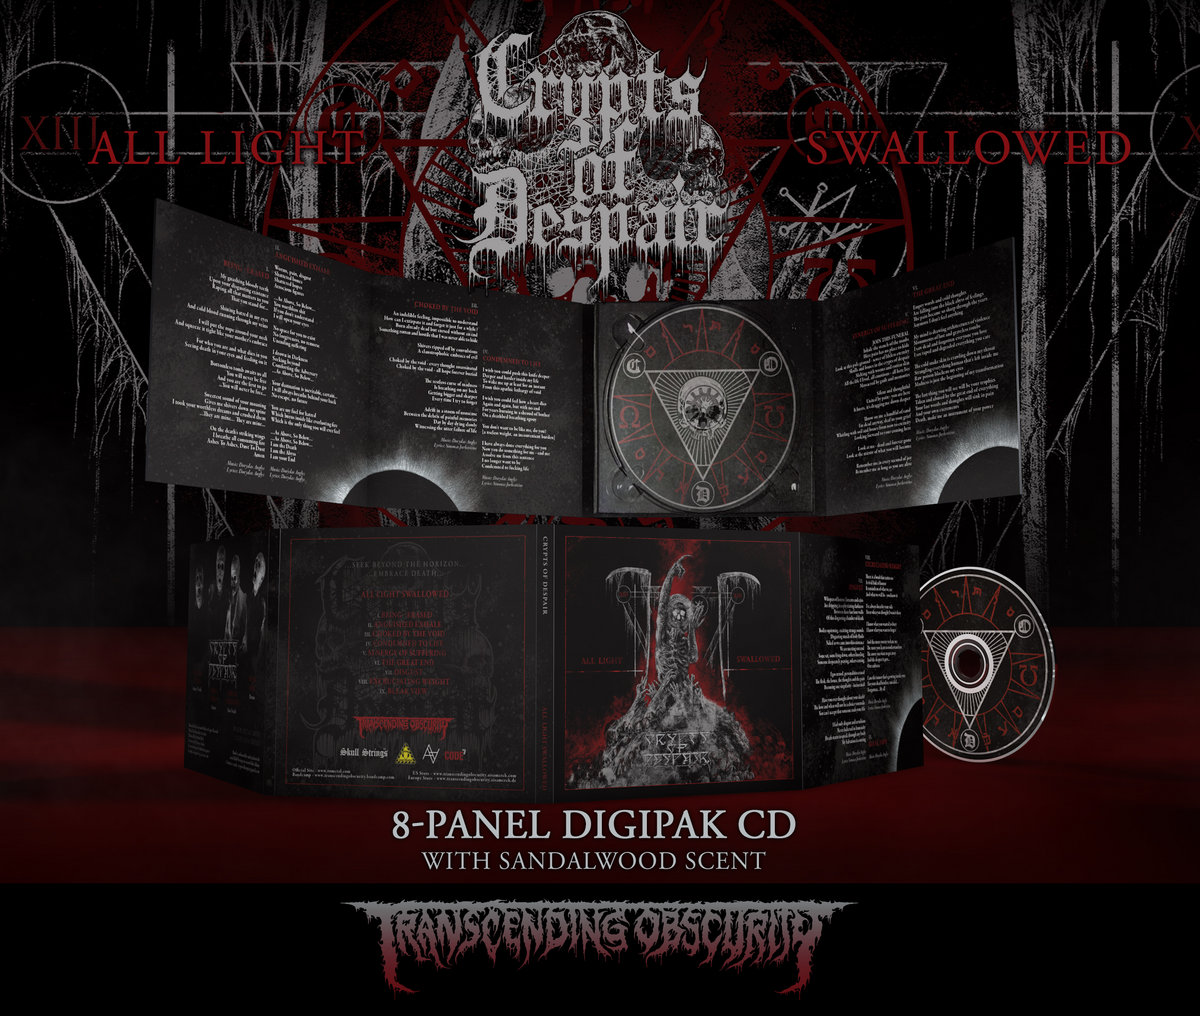 CRYPTS OF DESPAIR - All Light Swallowed 8-Panel Digipak CD with Sandalwood Scent